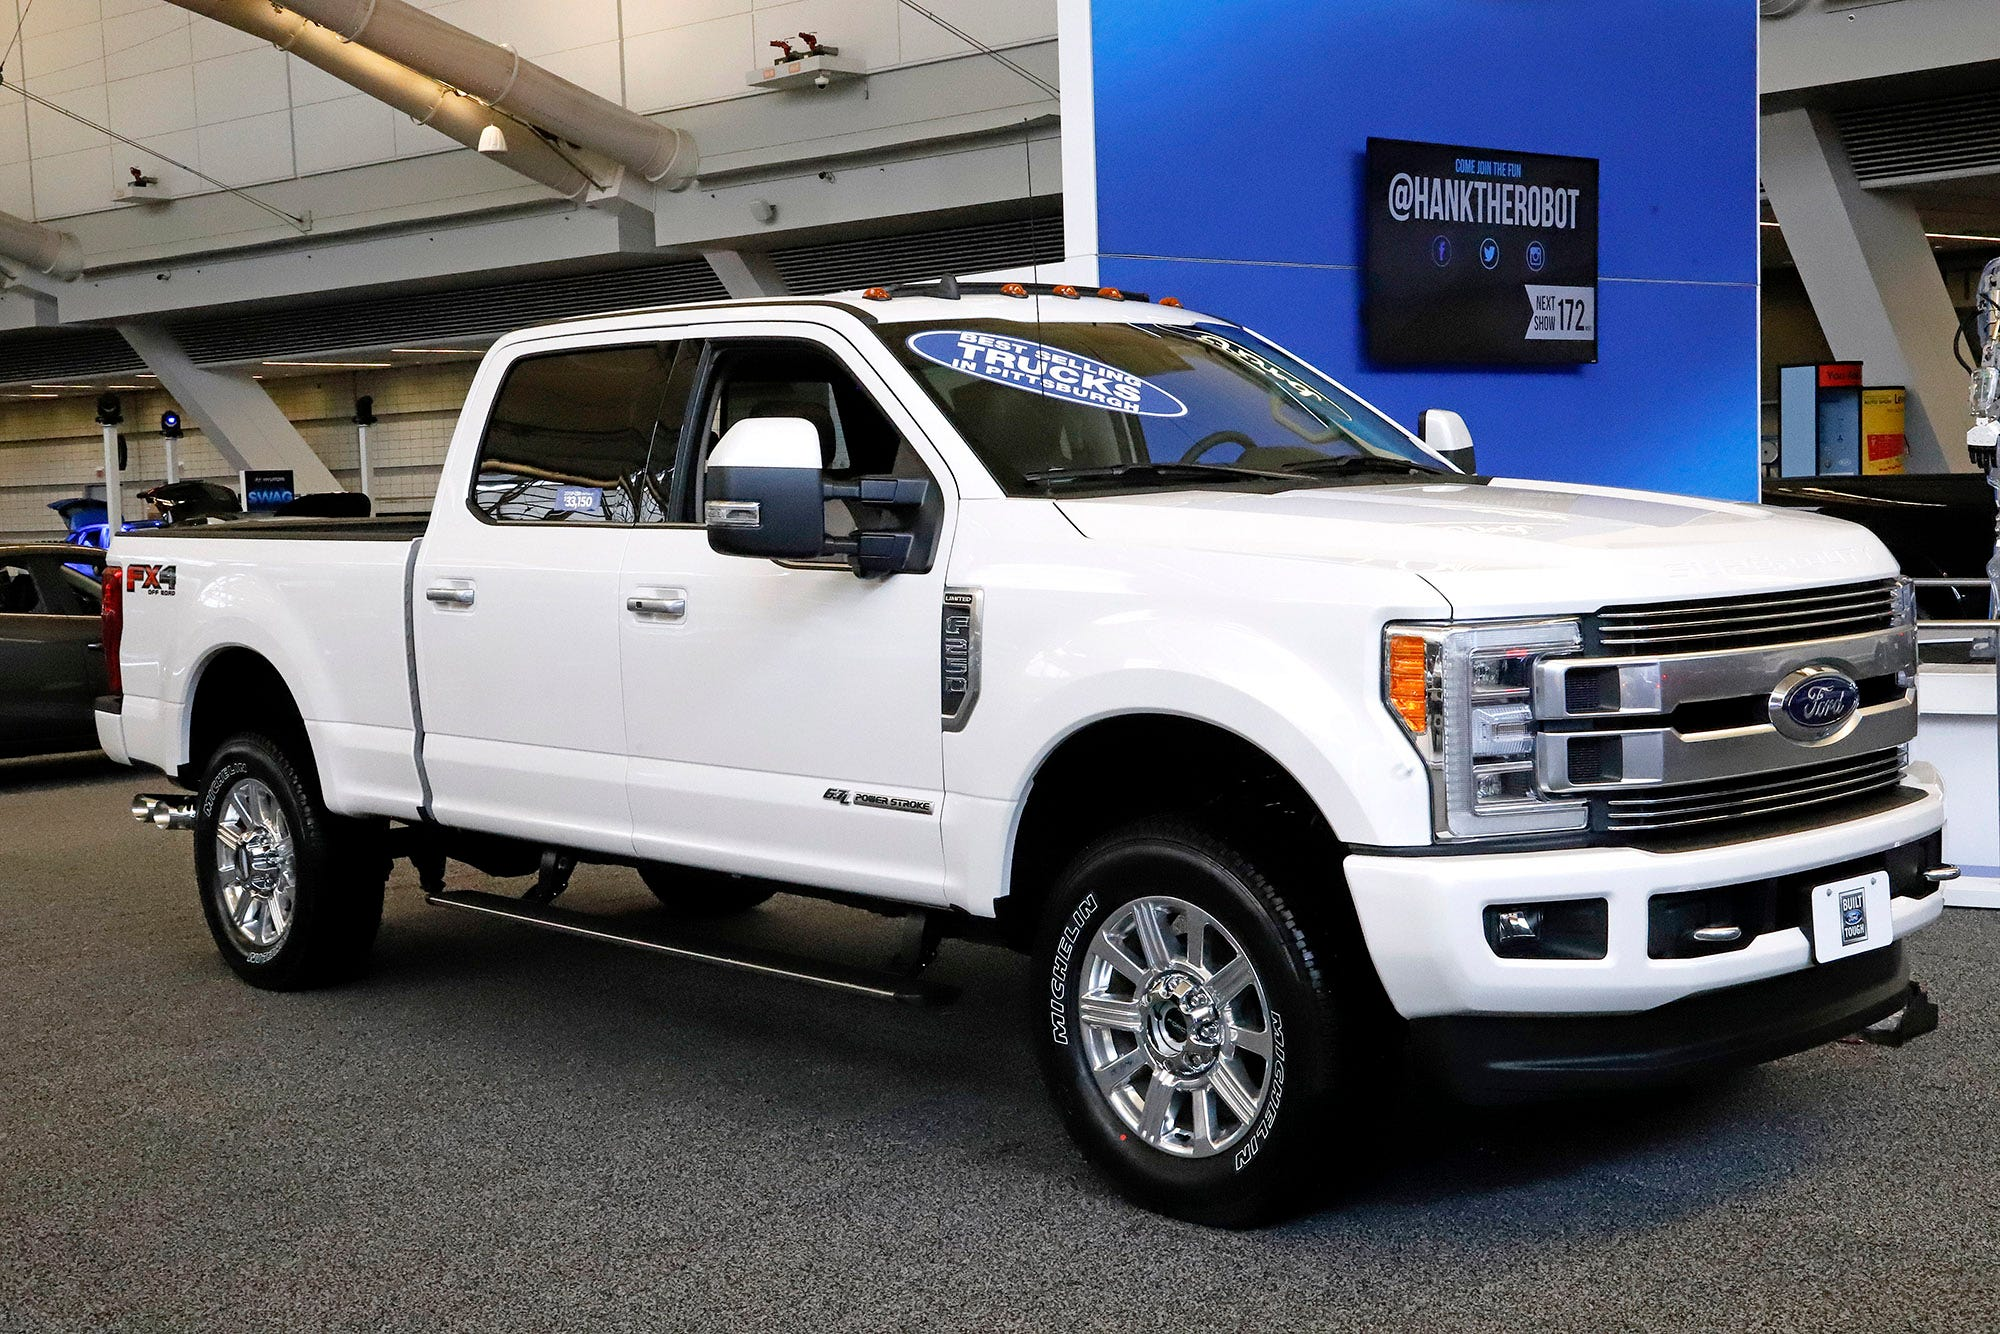 FULL-SIZED PICKUP TRUCK: Ford F-150